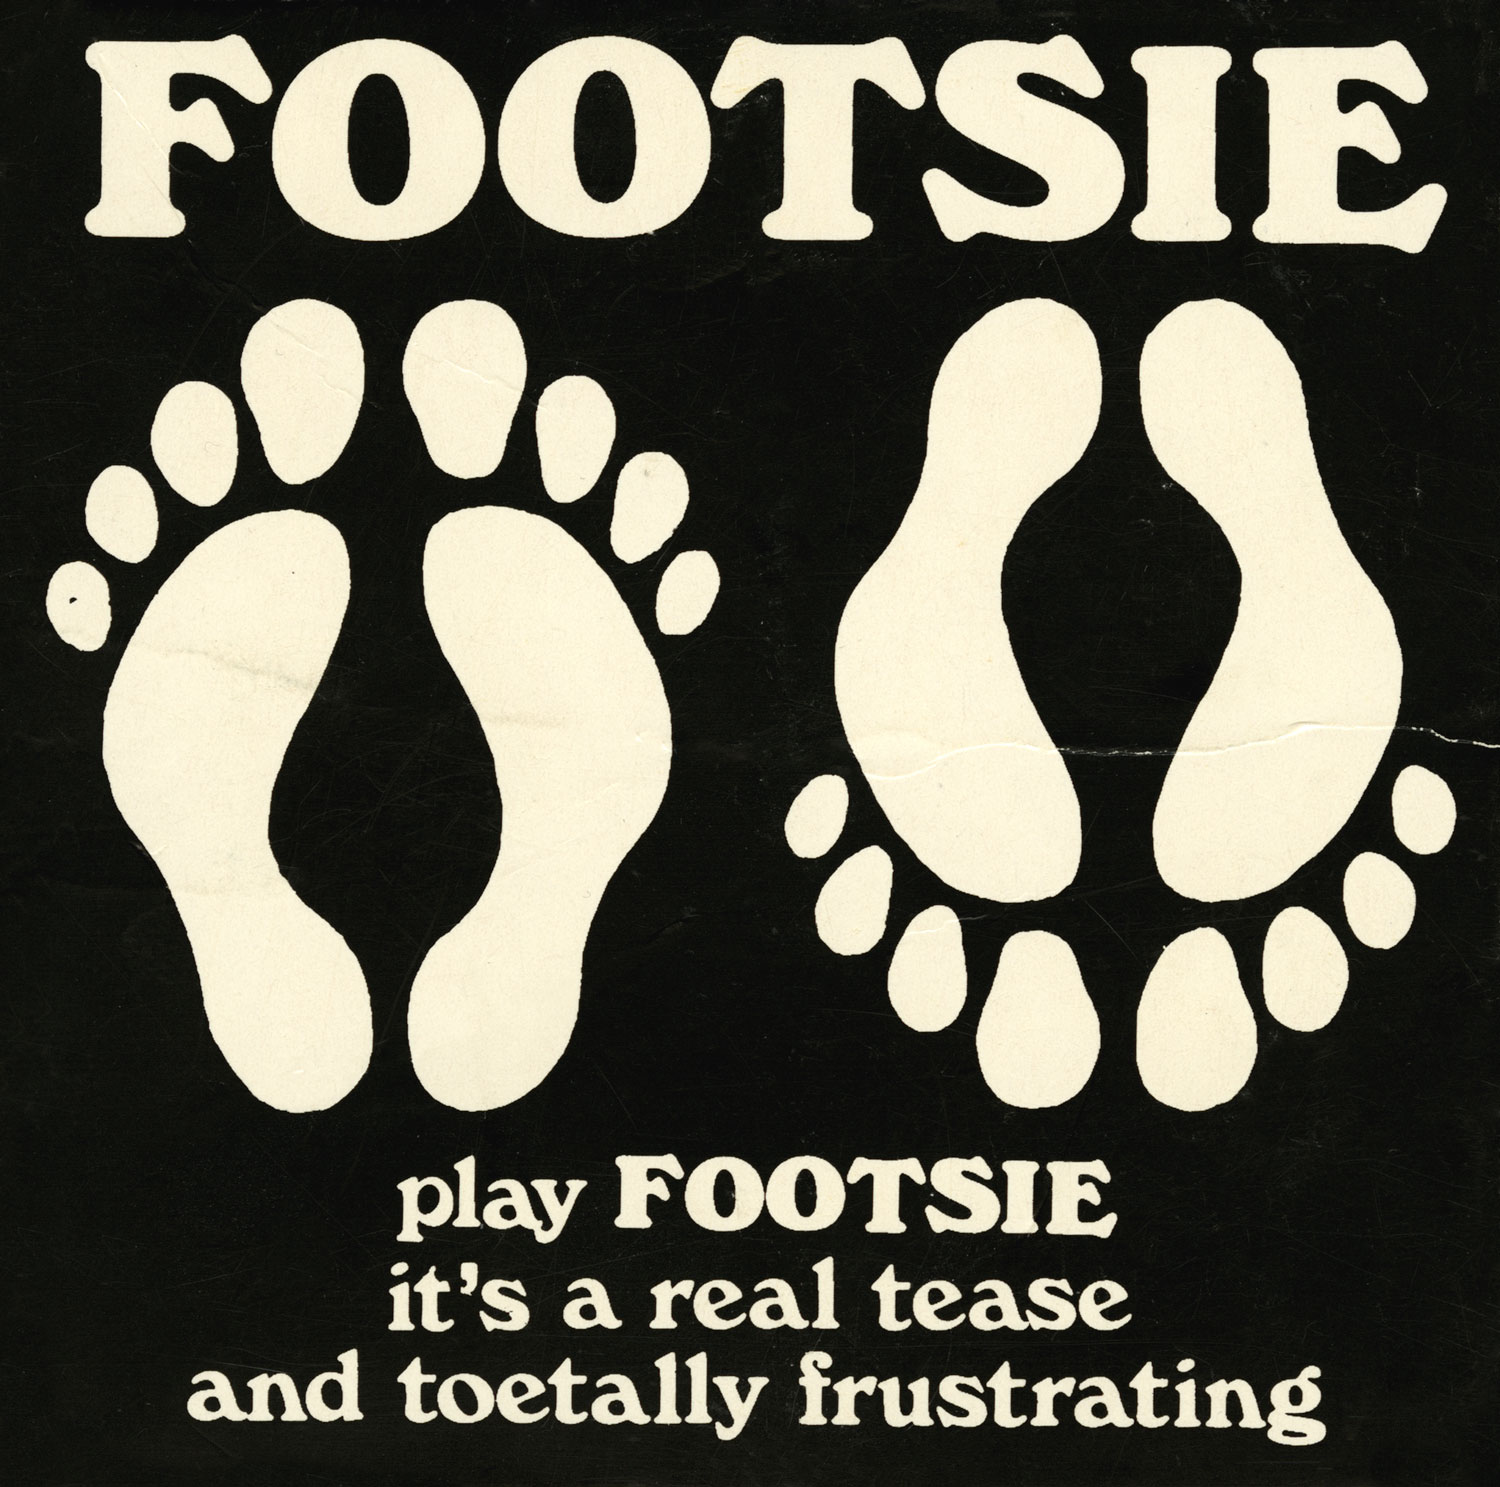 footsie-box.jpg